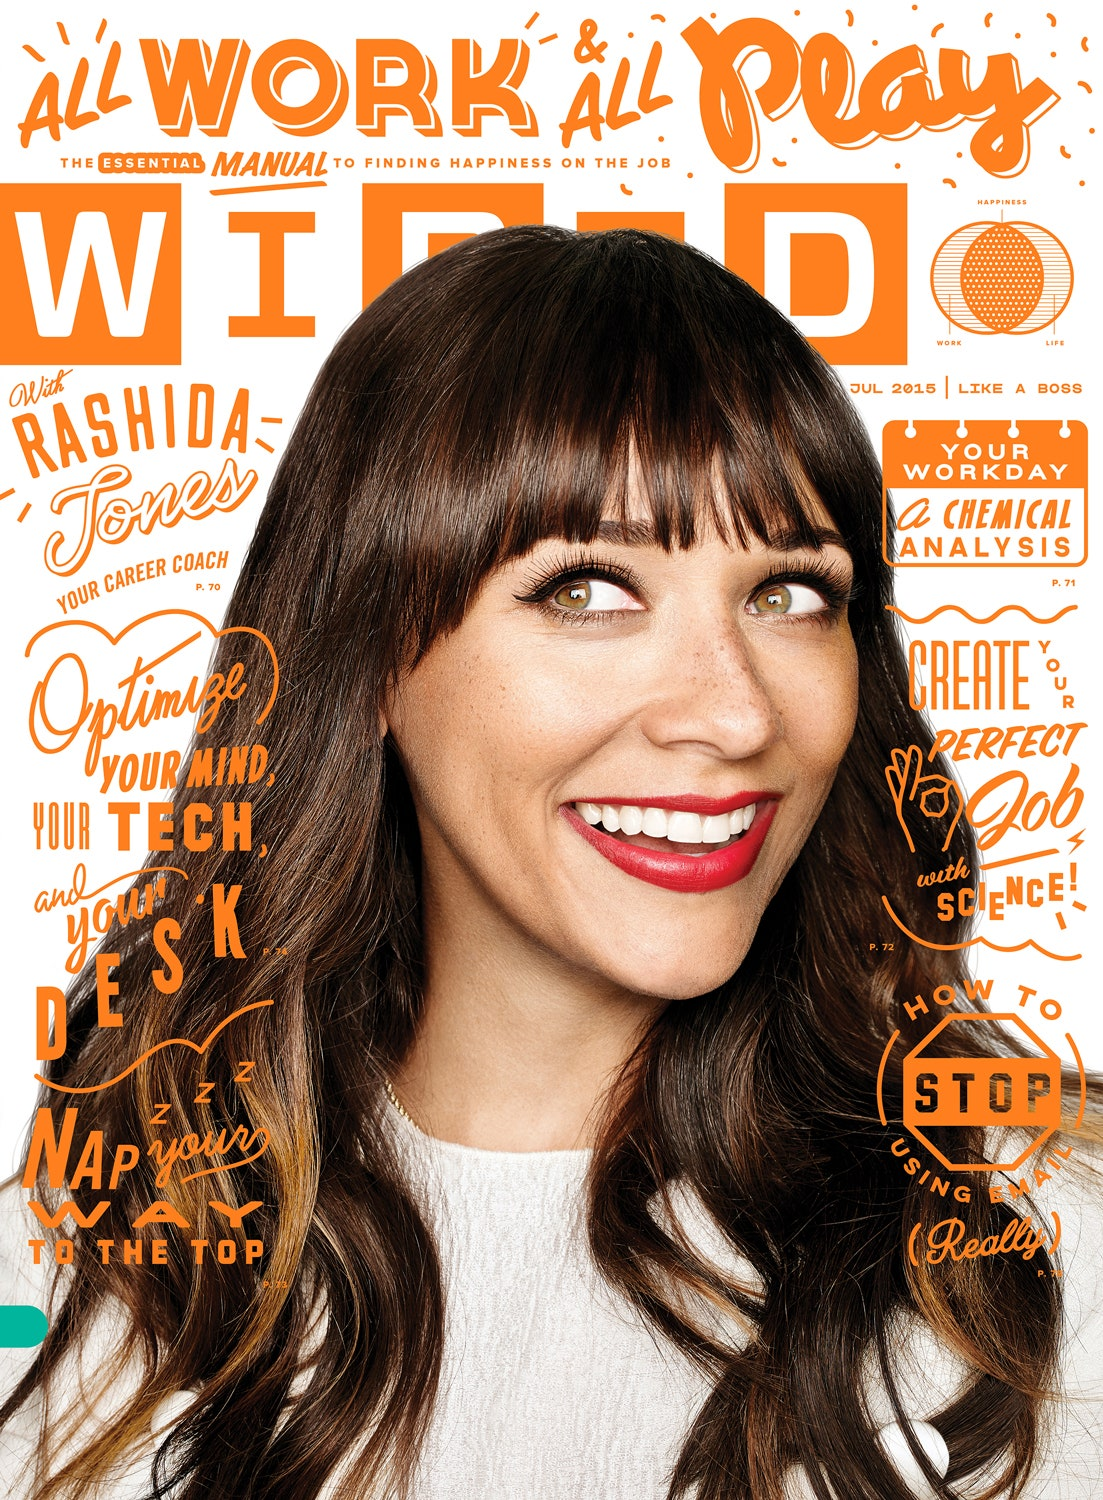 05. WIRED Cover - Business Magazines for Entrepreneurs